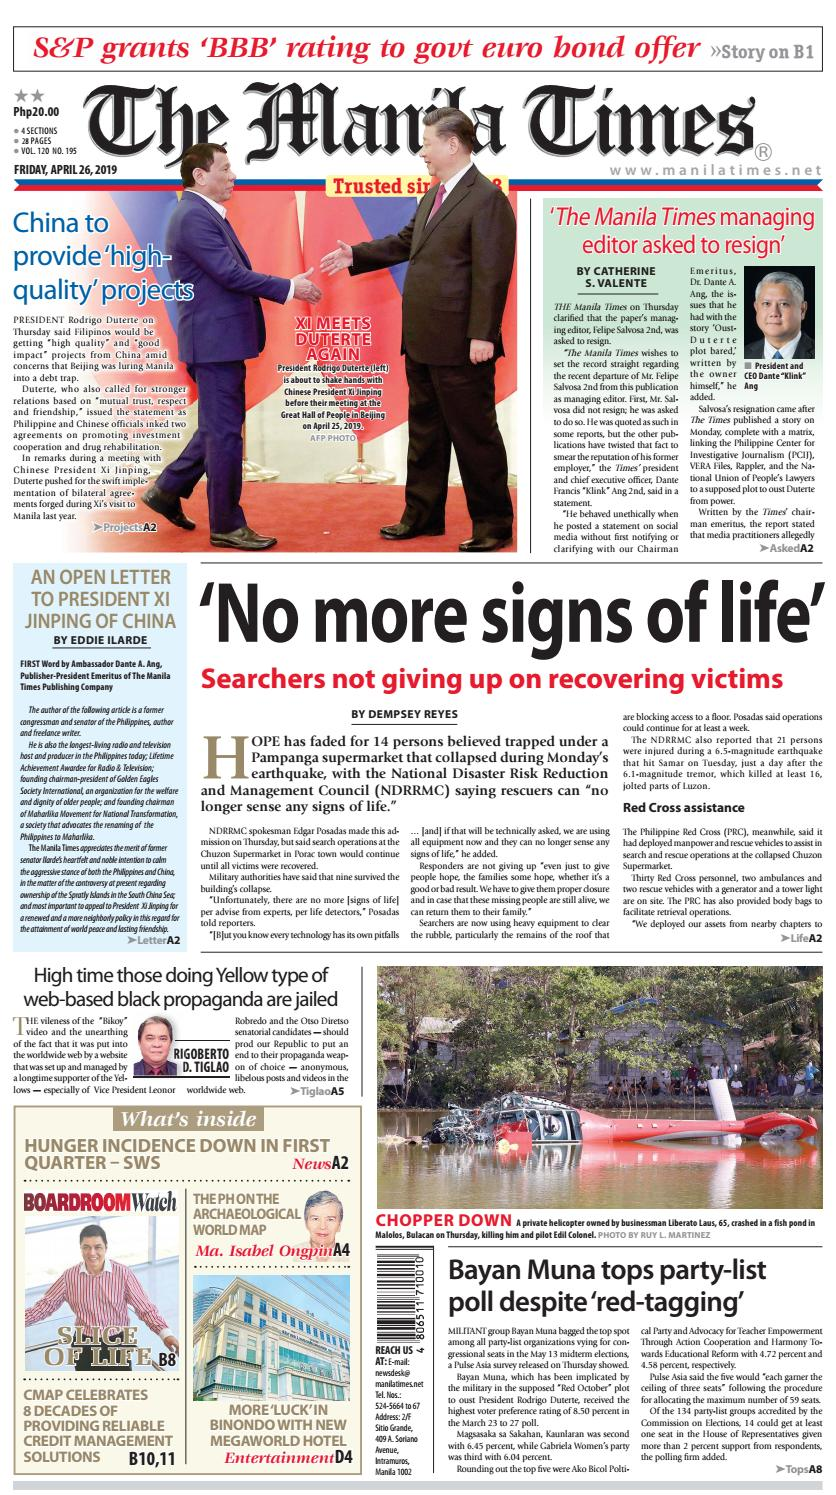 THE MANILA TIMES   APRIL 26, 2019 by The Manila Times - issuu